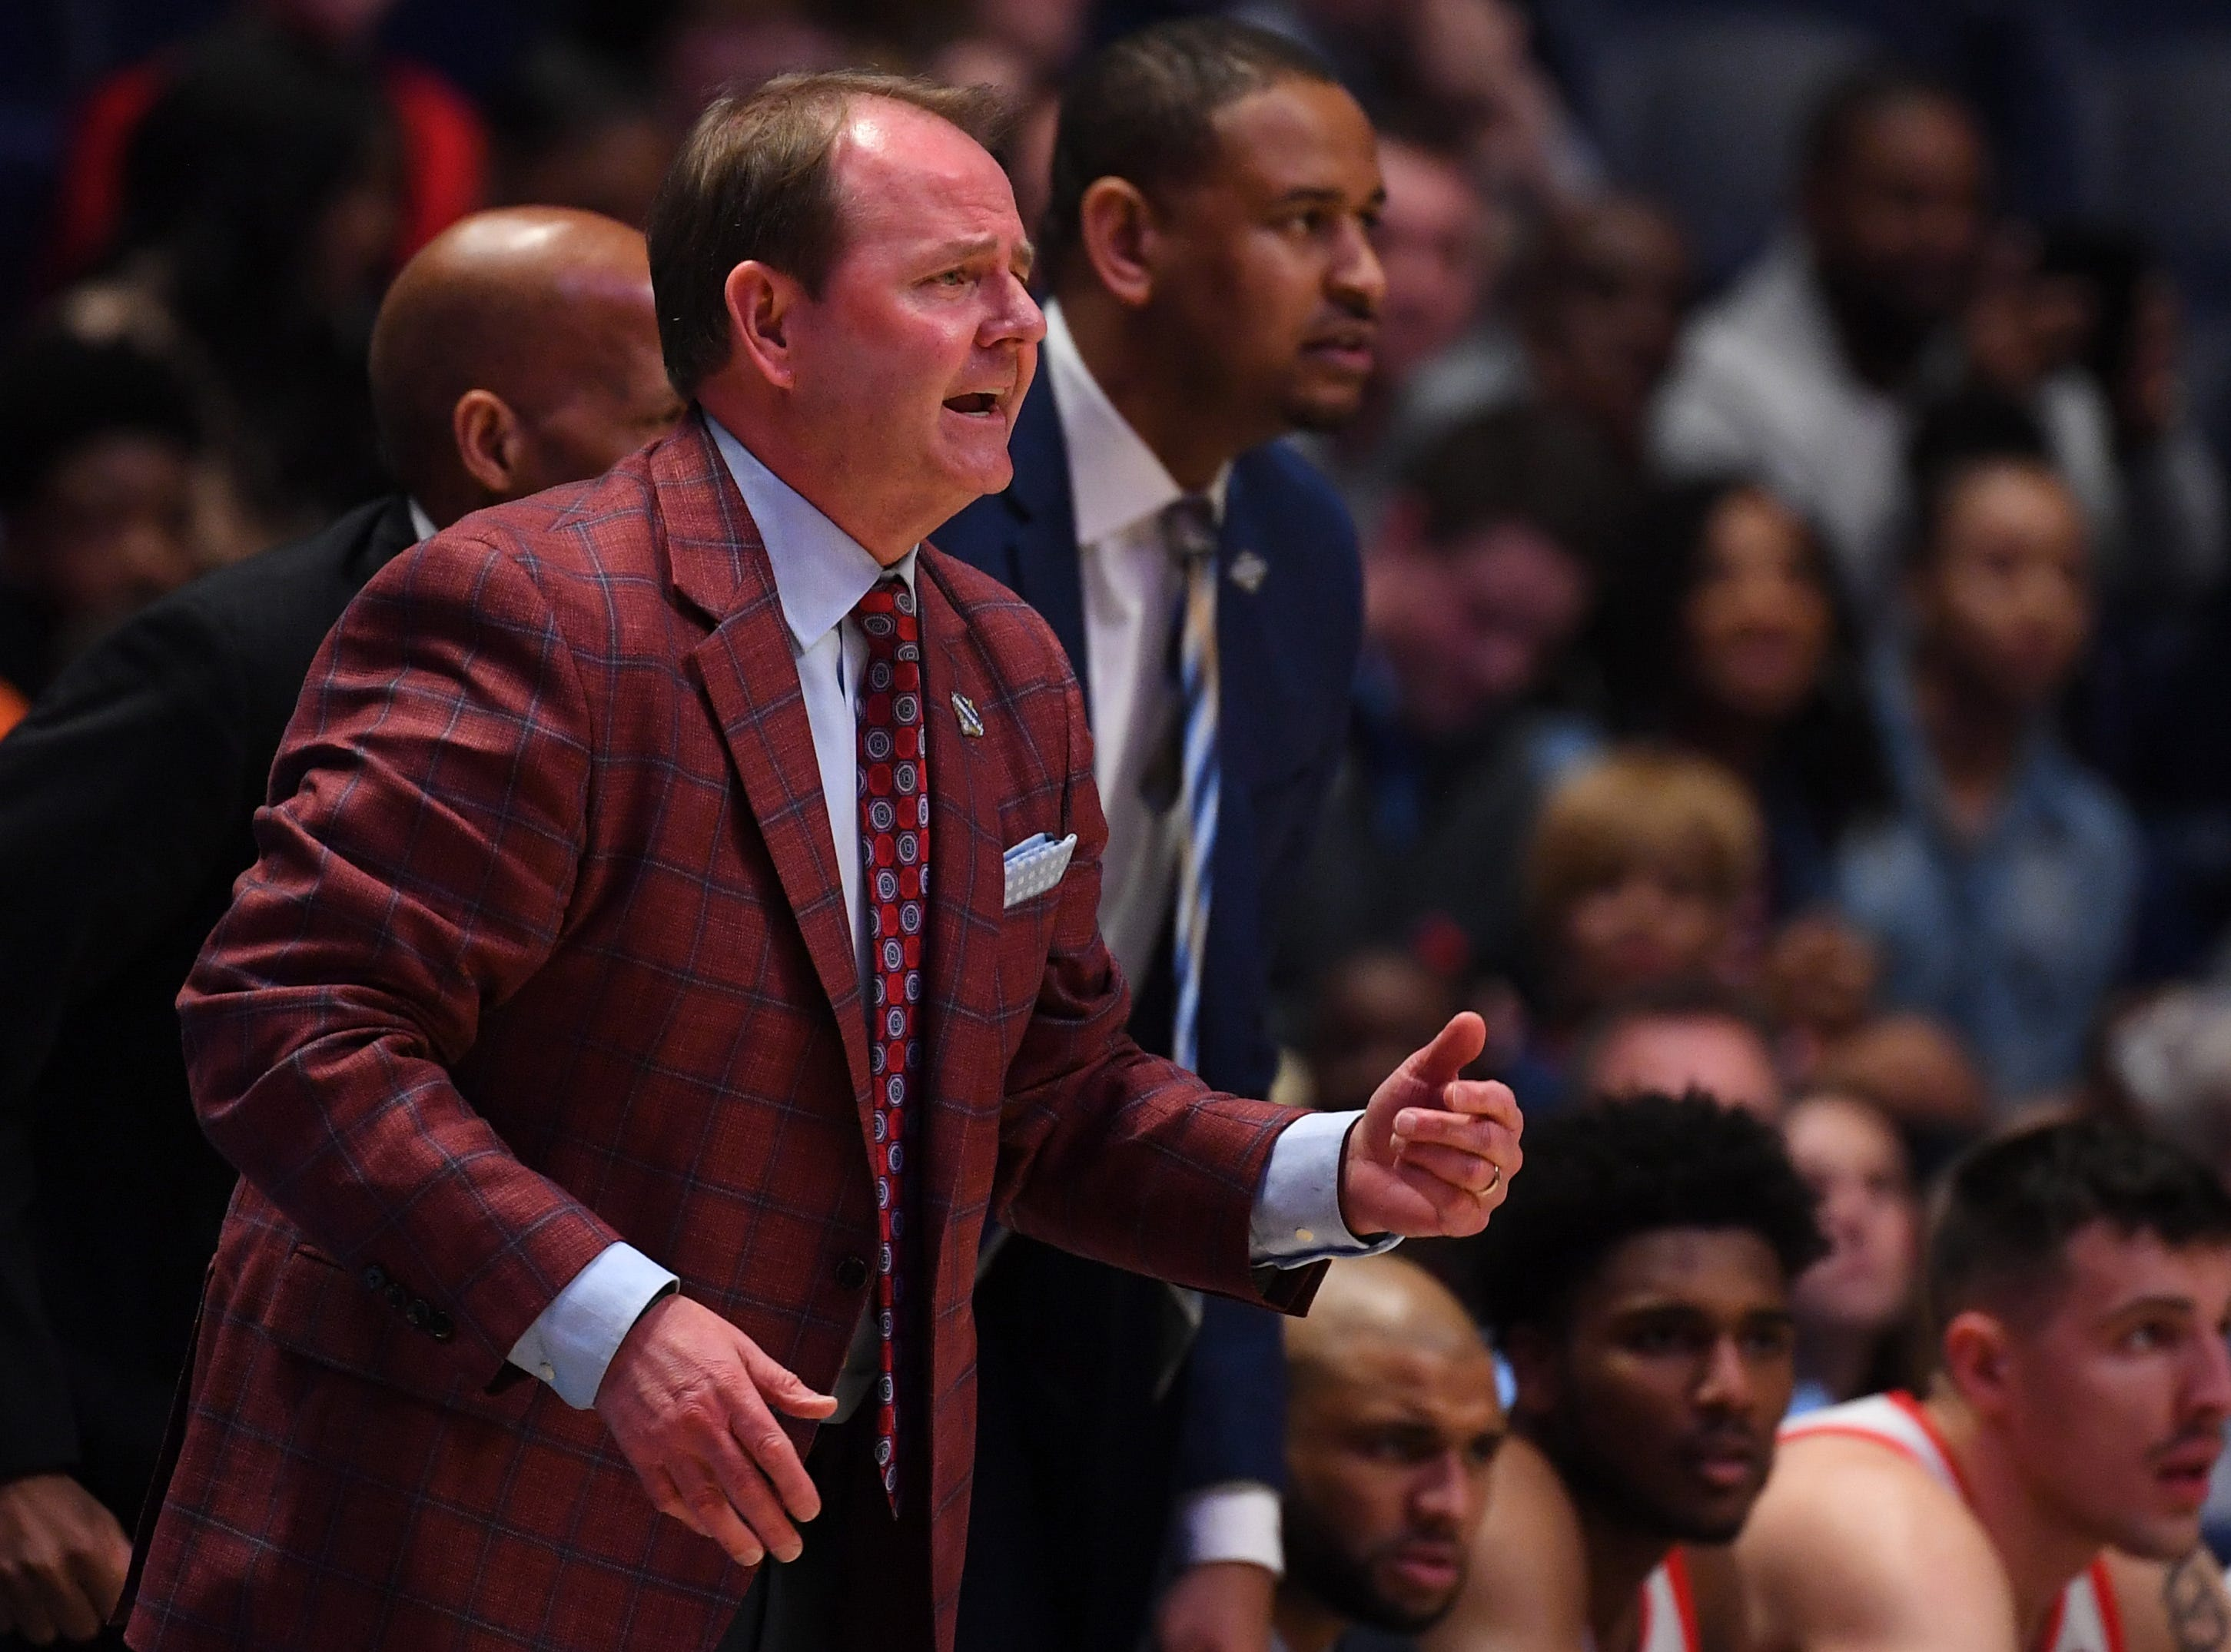 Mar 14, 2019; Nashville, TN, USA; Mississippi Rebels head coach Kermit Davis, against the Alabama Crimson Tide during the first half of the SEC conference tournament at Bridgestone Arena. Mandatory Credit: Christopher Hanewinckel-USA TODAY Sports